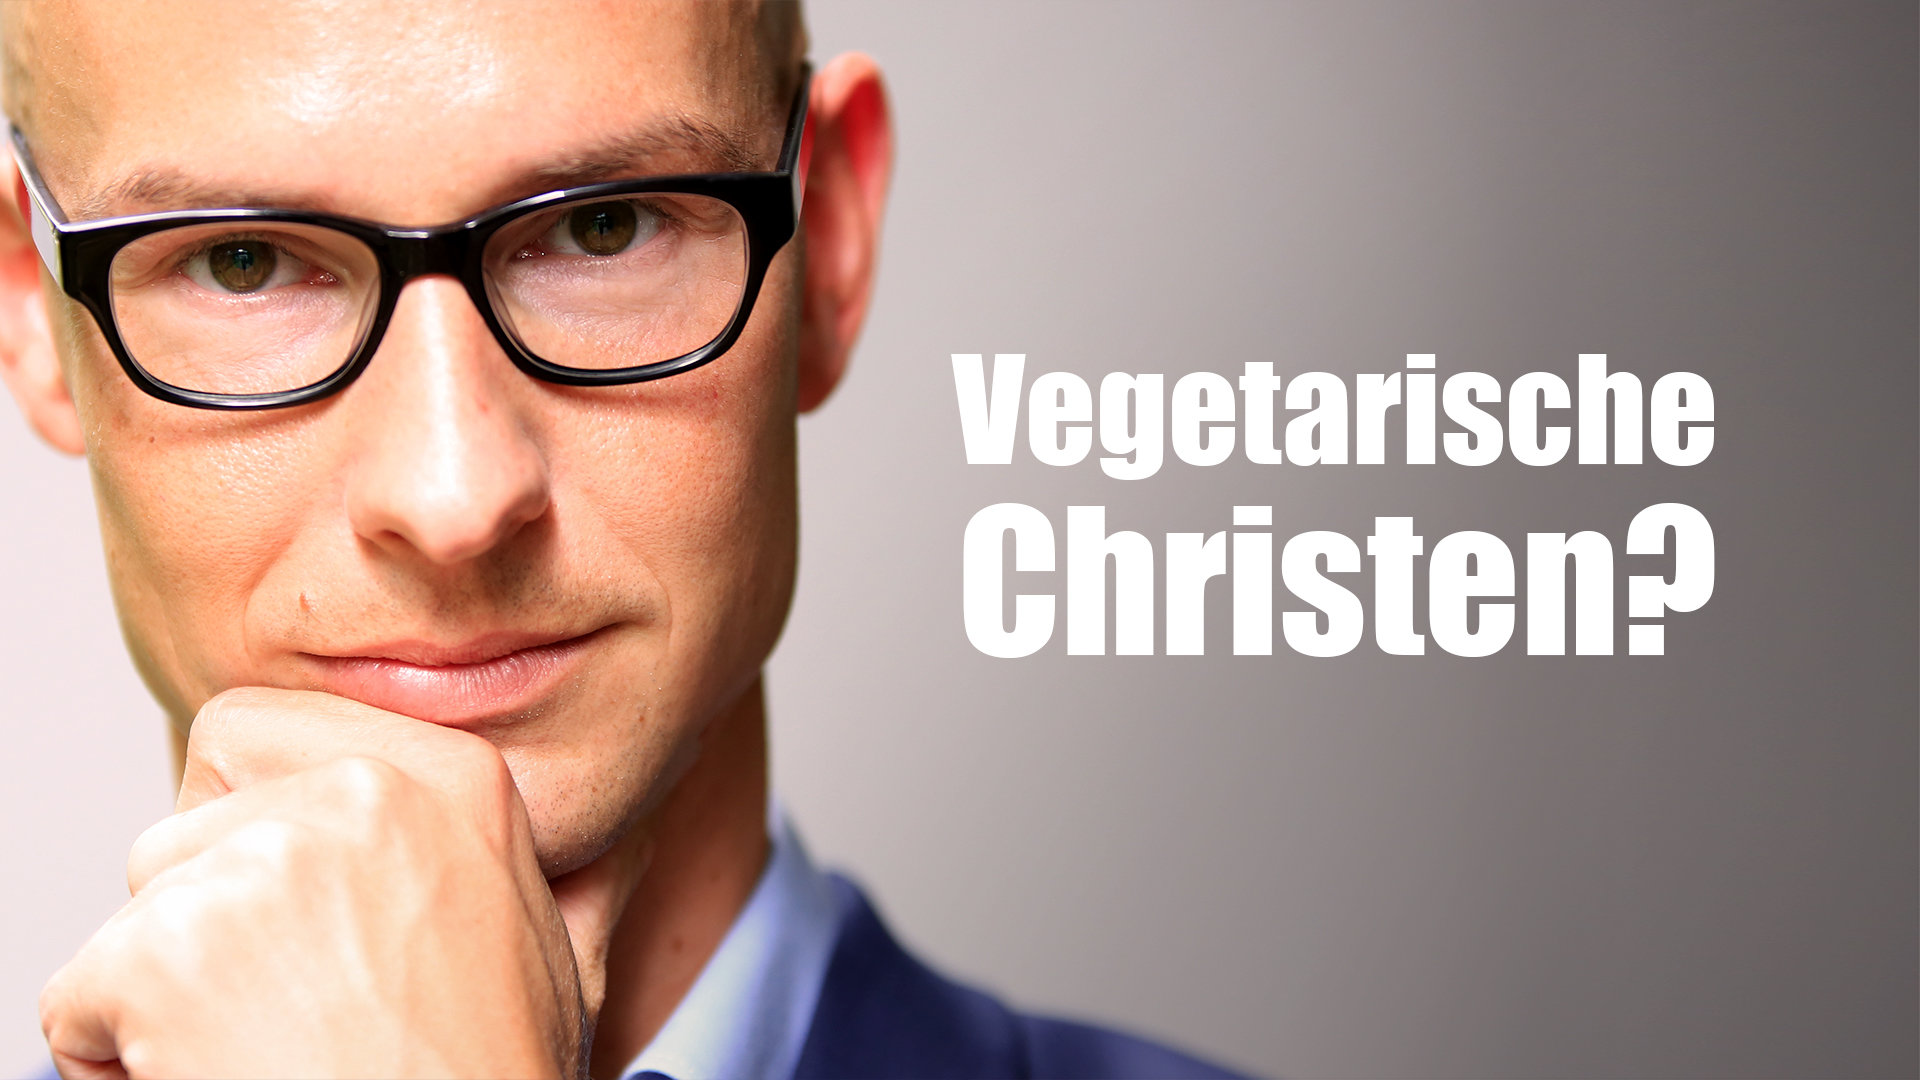 Vegetarische Christen? Klartext.